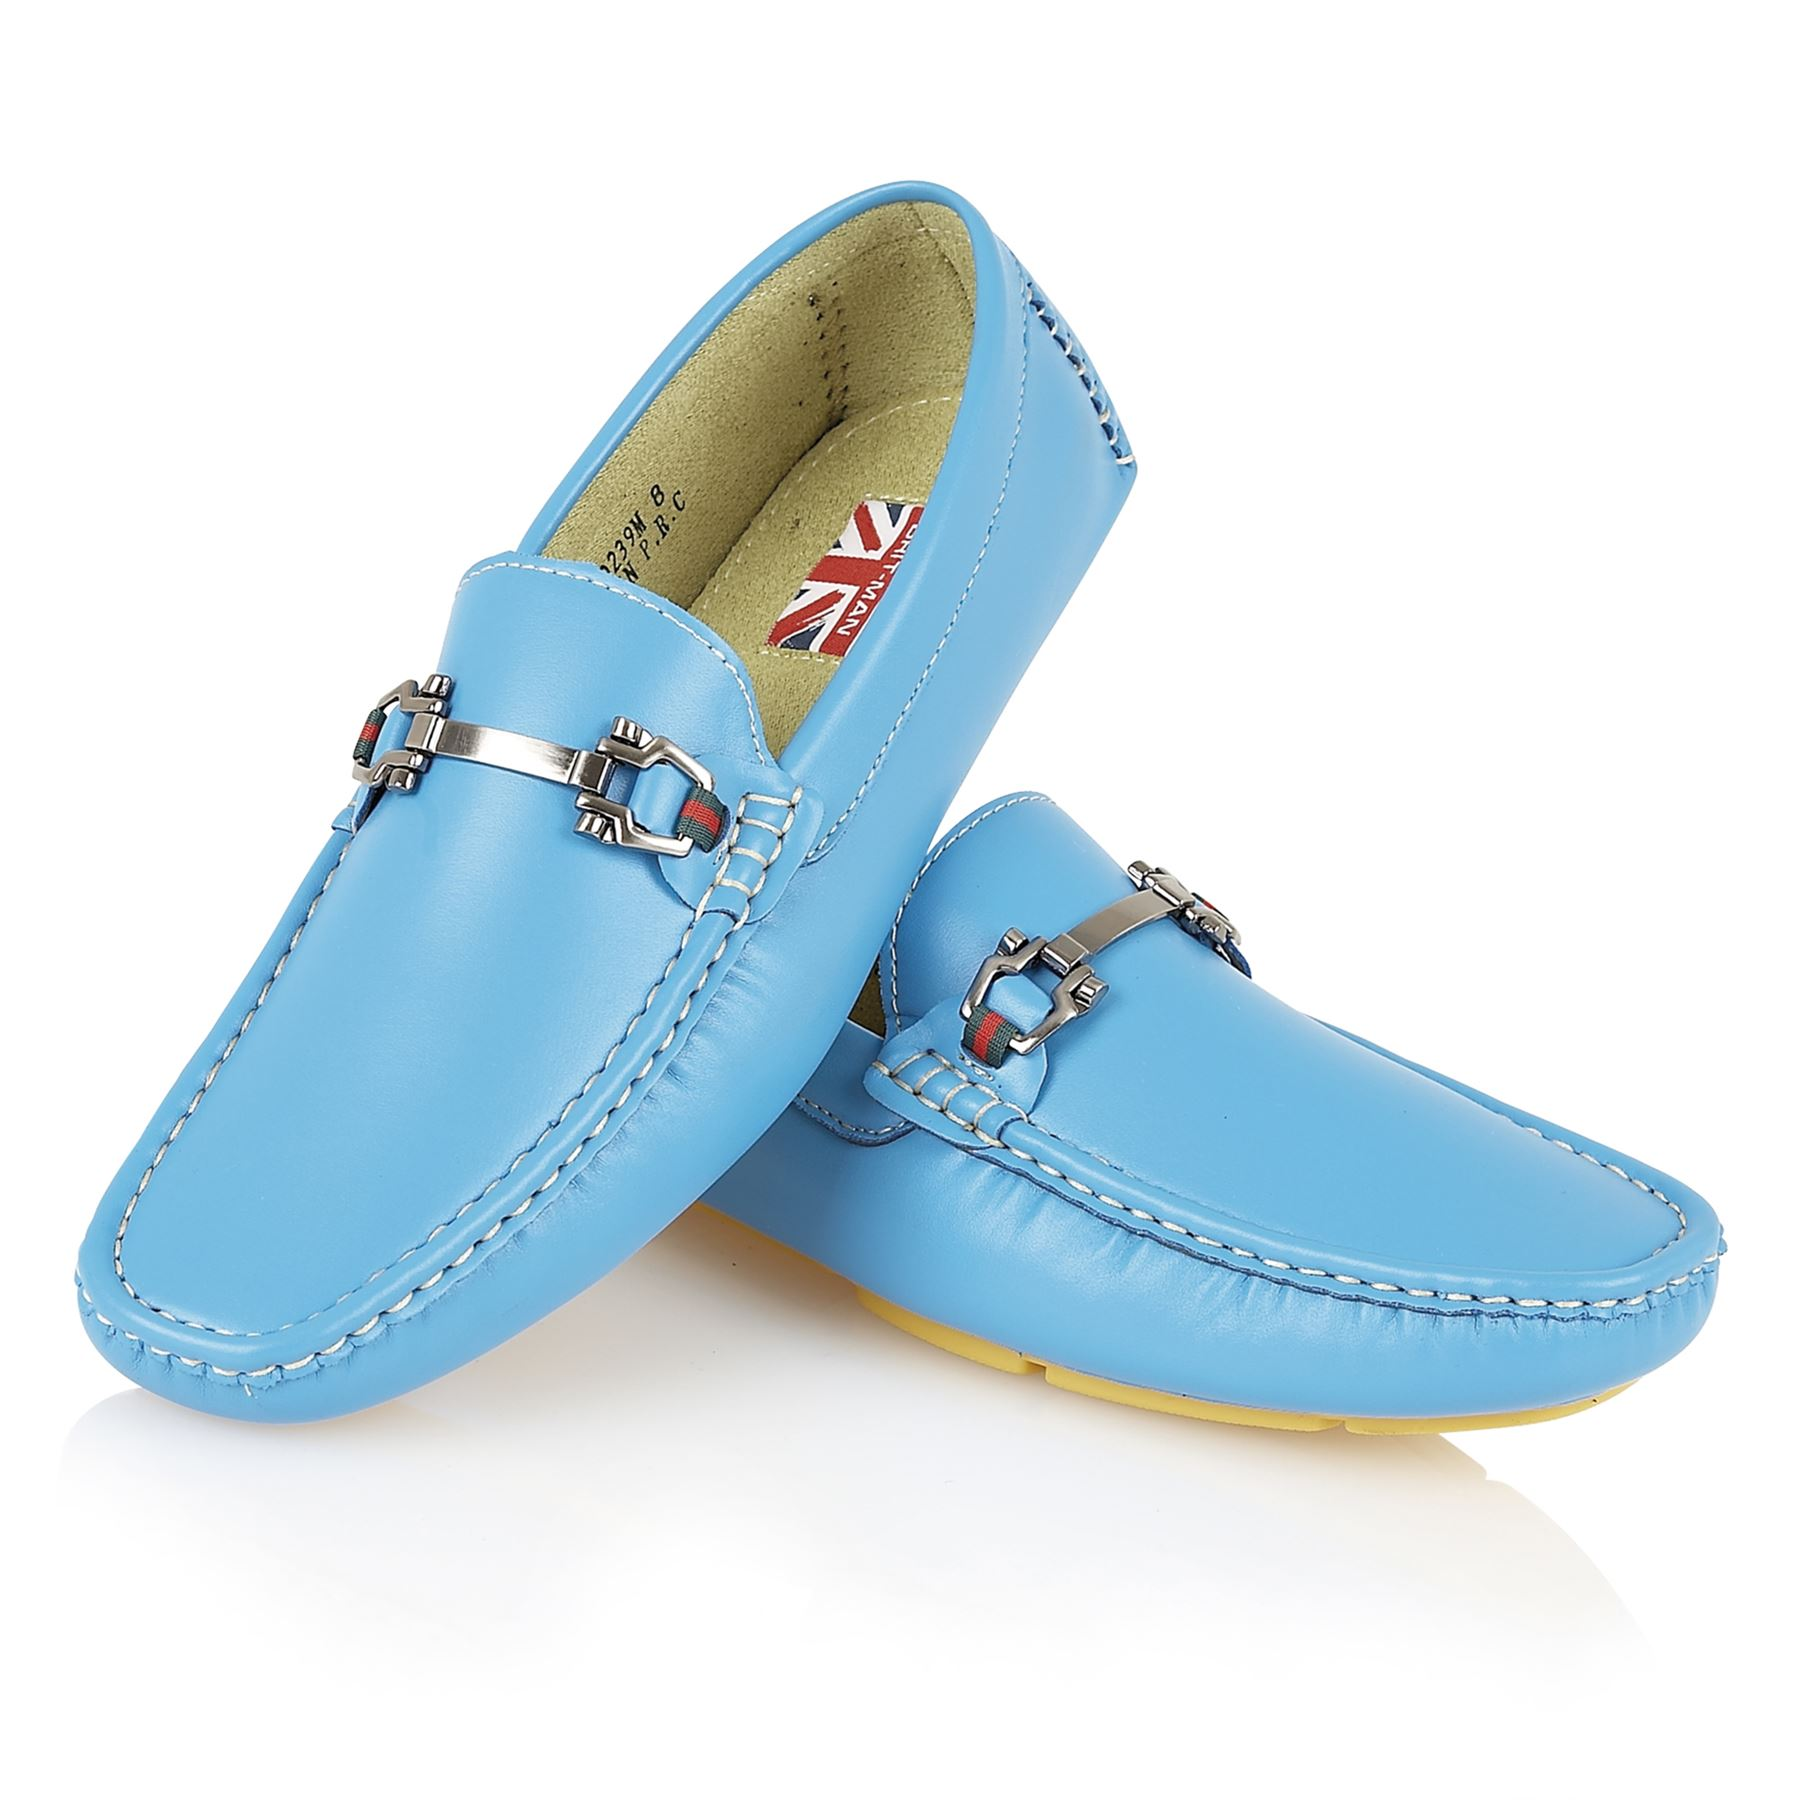 Creative Boys Leather Loafers Boys' Shoes Clothes, Shoes & Accessories